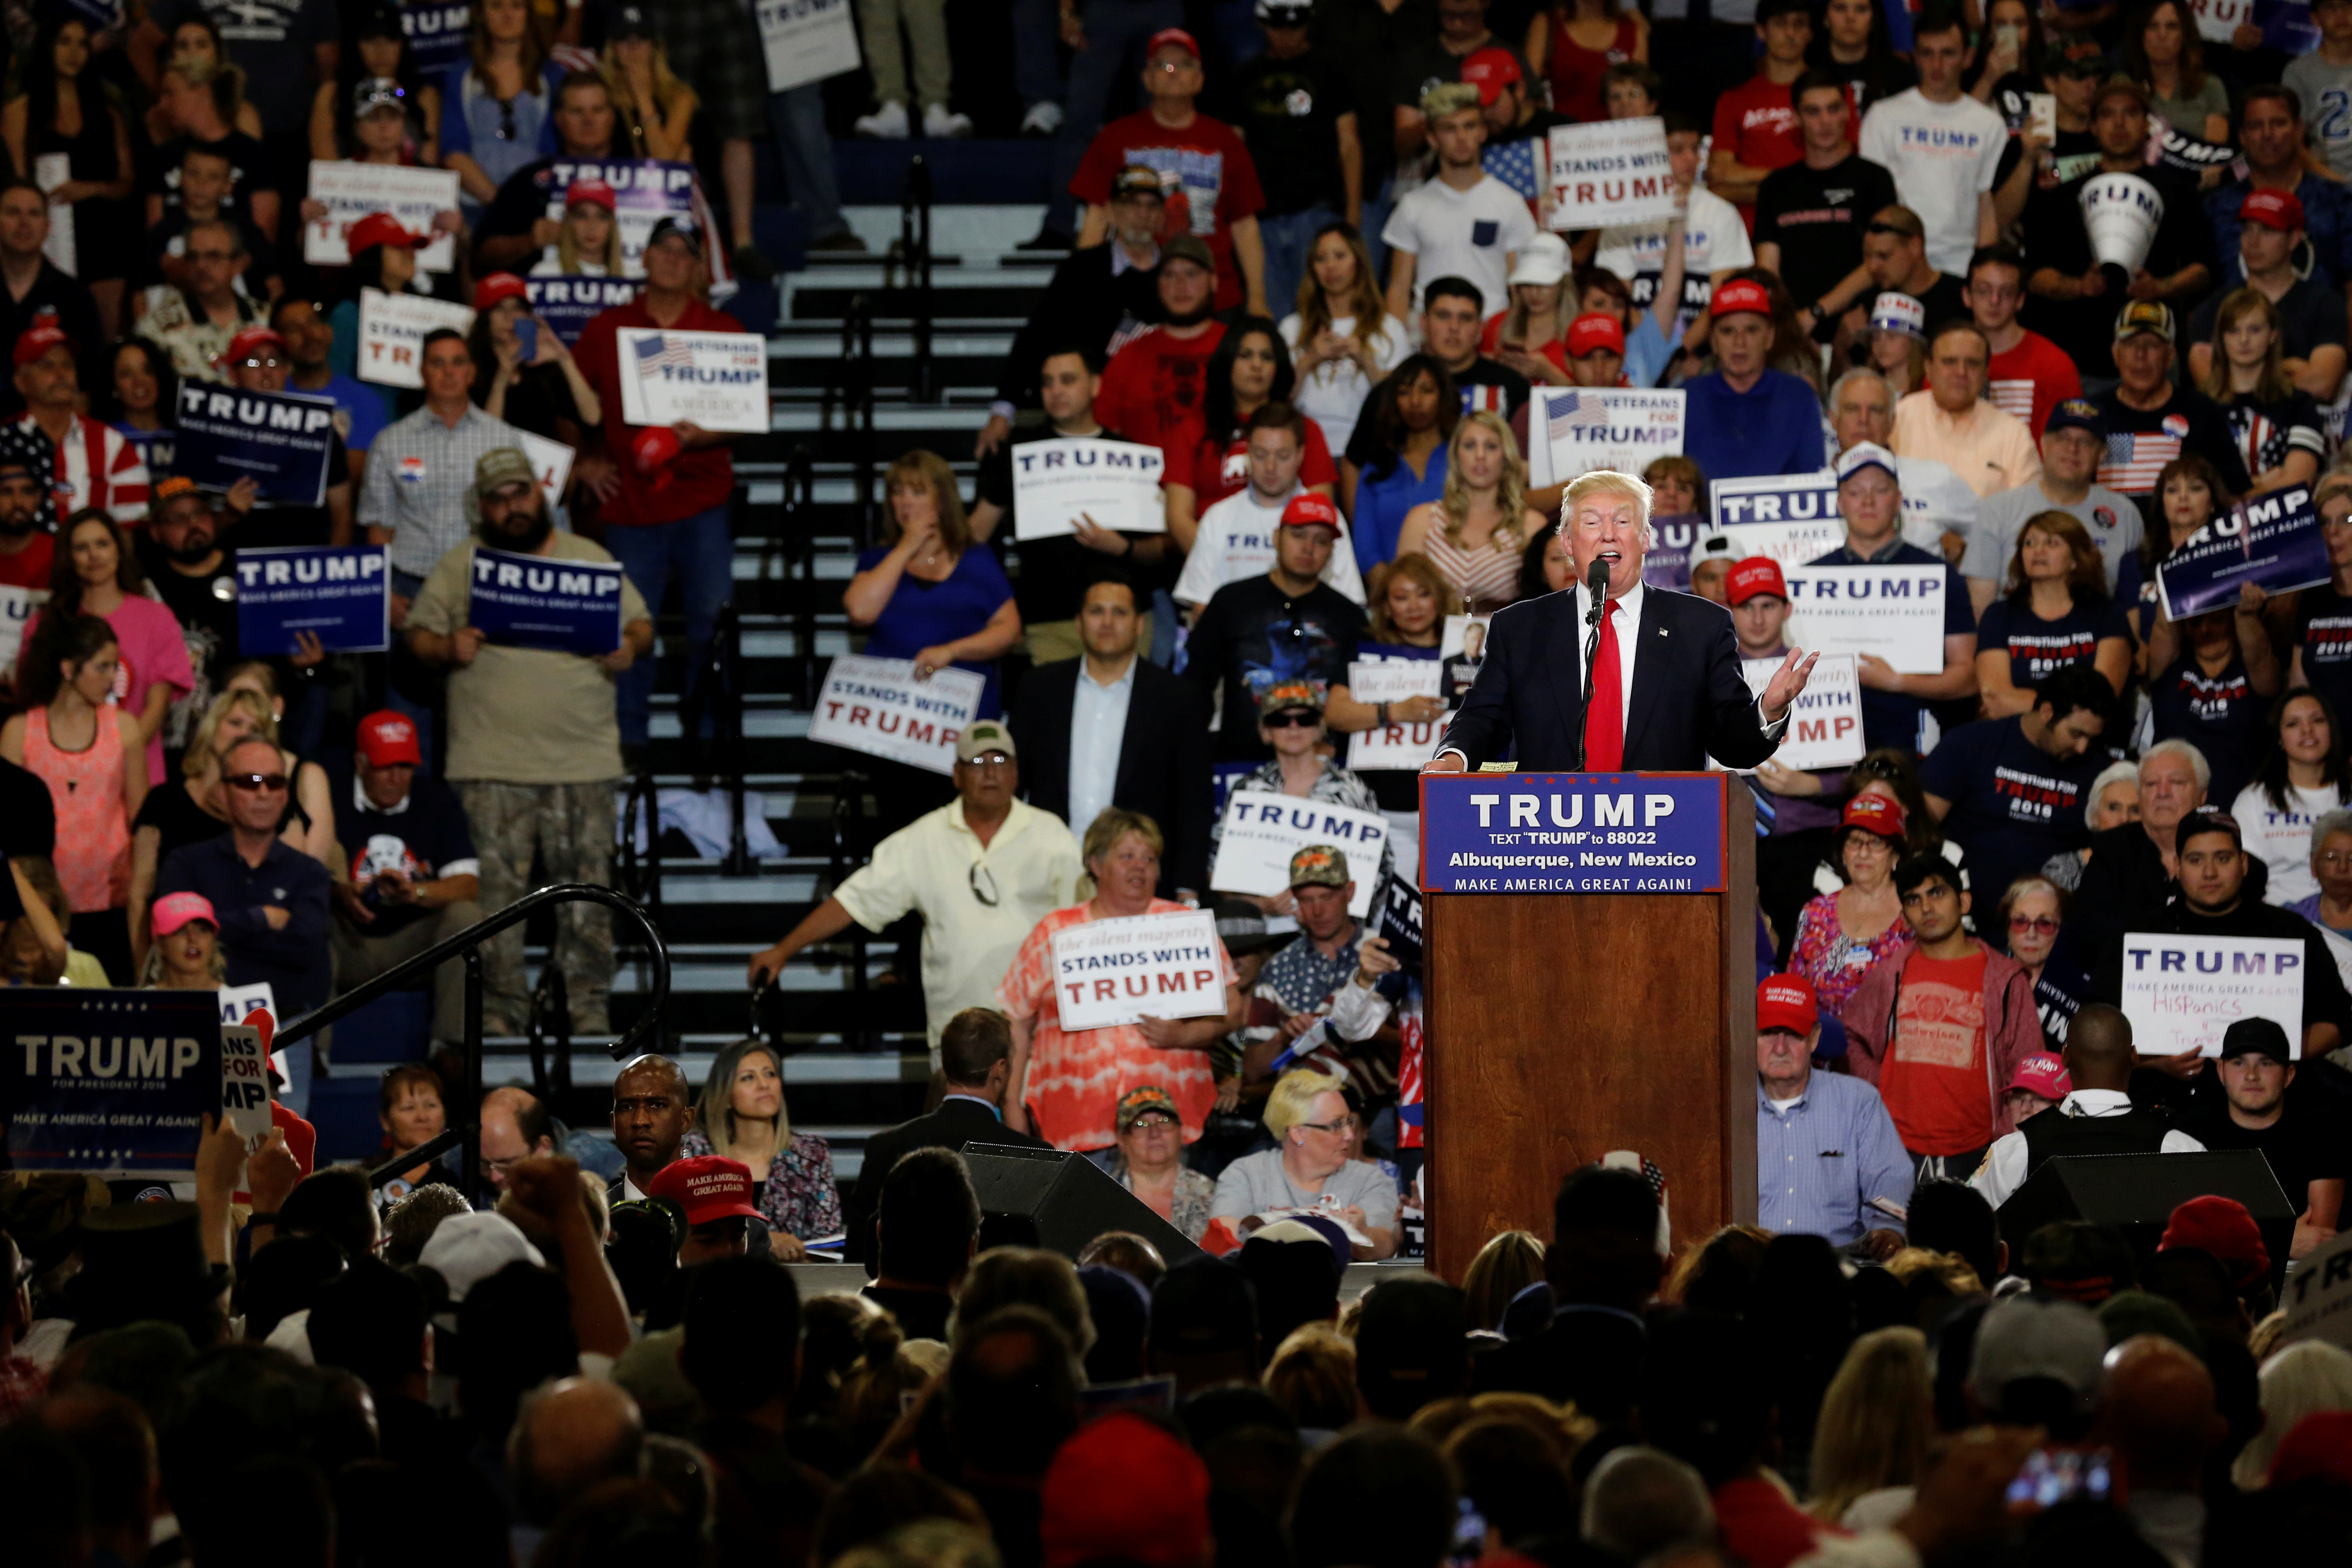 Trump holds a rally with supporters in Albuquerque